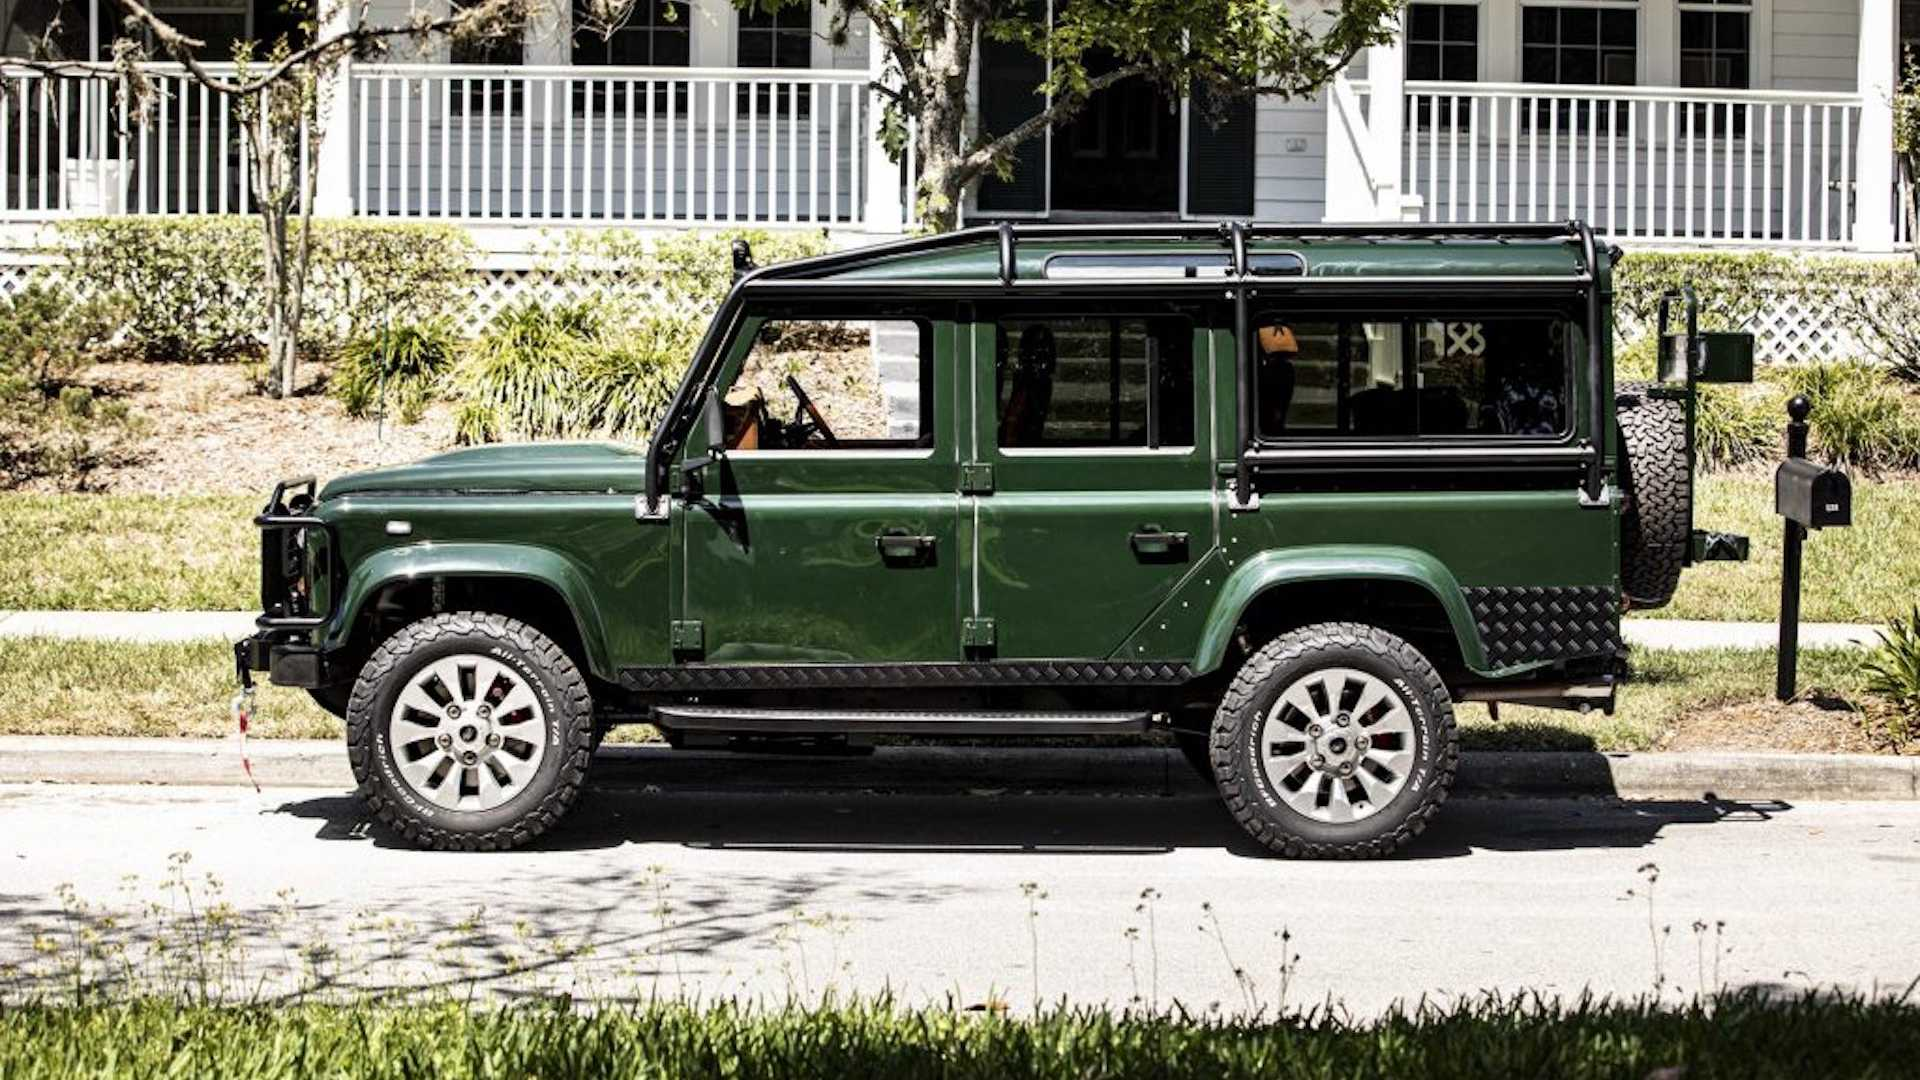 custom-land-rover-defender-with-ls3-engine-5